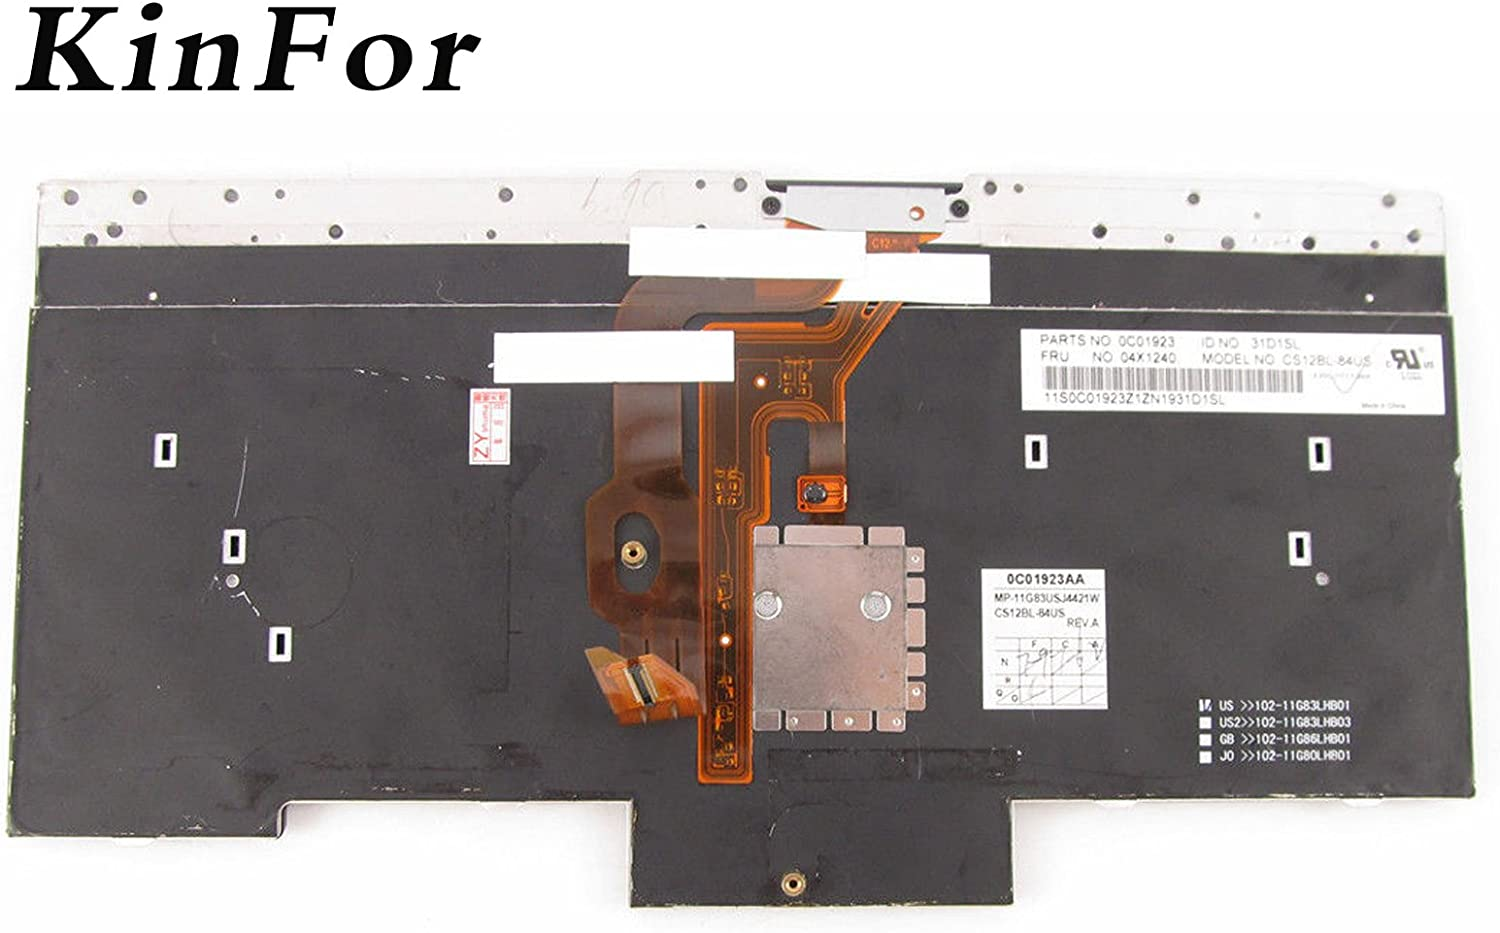 Without Frame Compatible Dell Alienware 15 R3 P//N New US English Black Backlit Keyboard PK131Q71A00 HH53H PK131Q72A00 NSK-ED0BC 01 NSK-ED0BC 1D PK131Q71A01 0XJYDD XJYDD Light Backlight